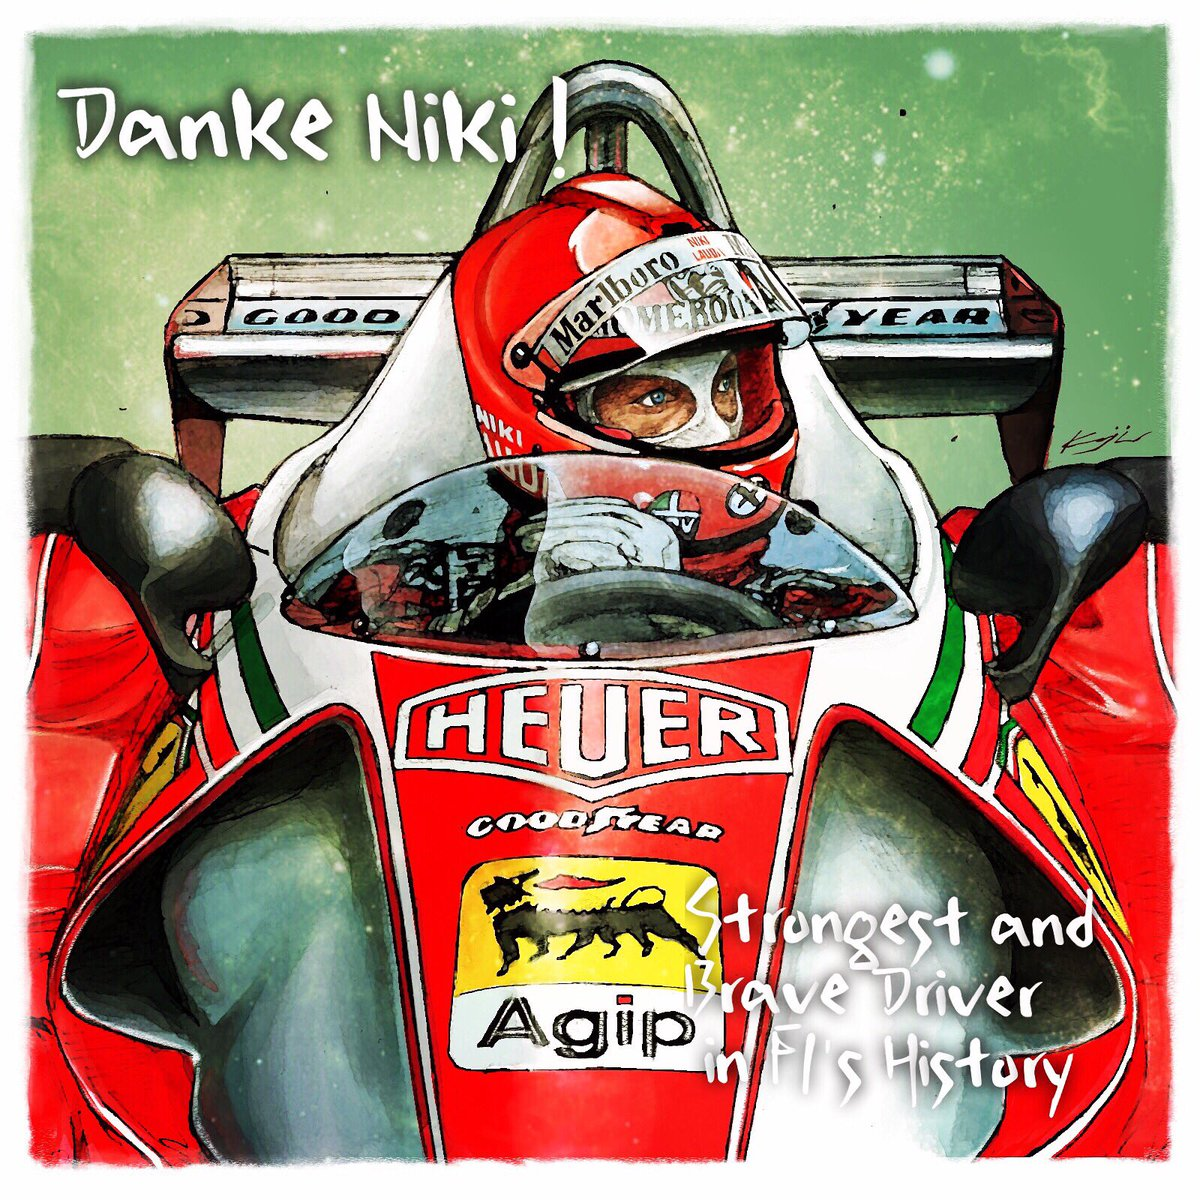 (今日の1枚) Rest In Peace, Niki Lauda #DankeNiki #F1 ✨